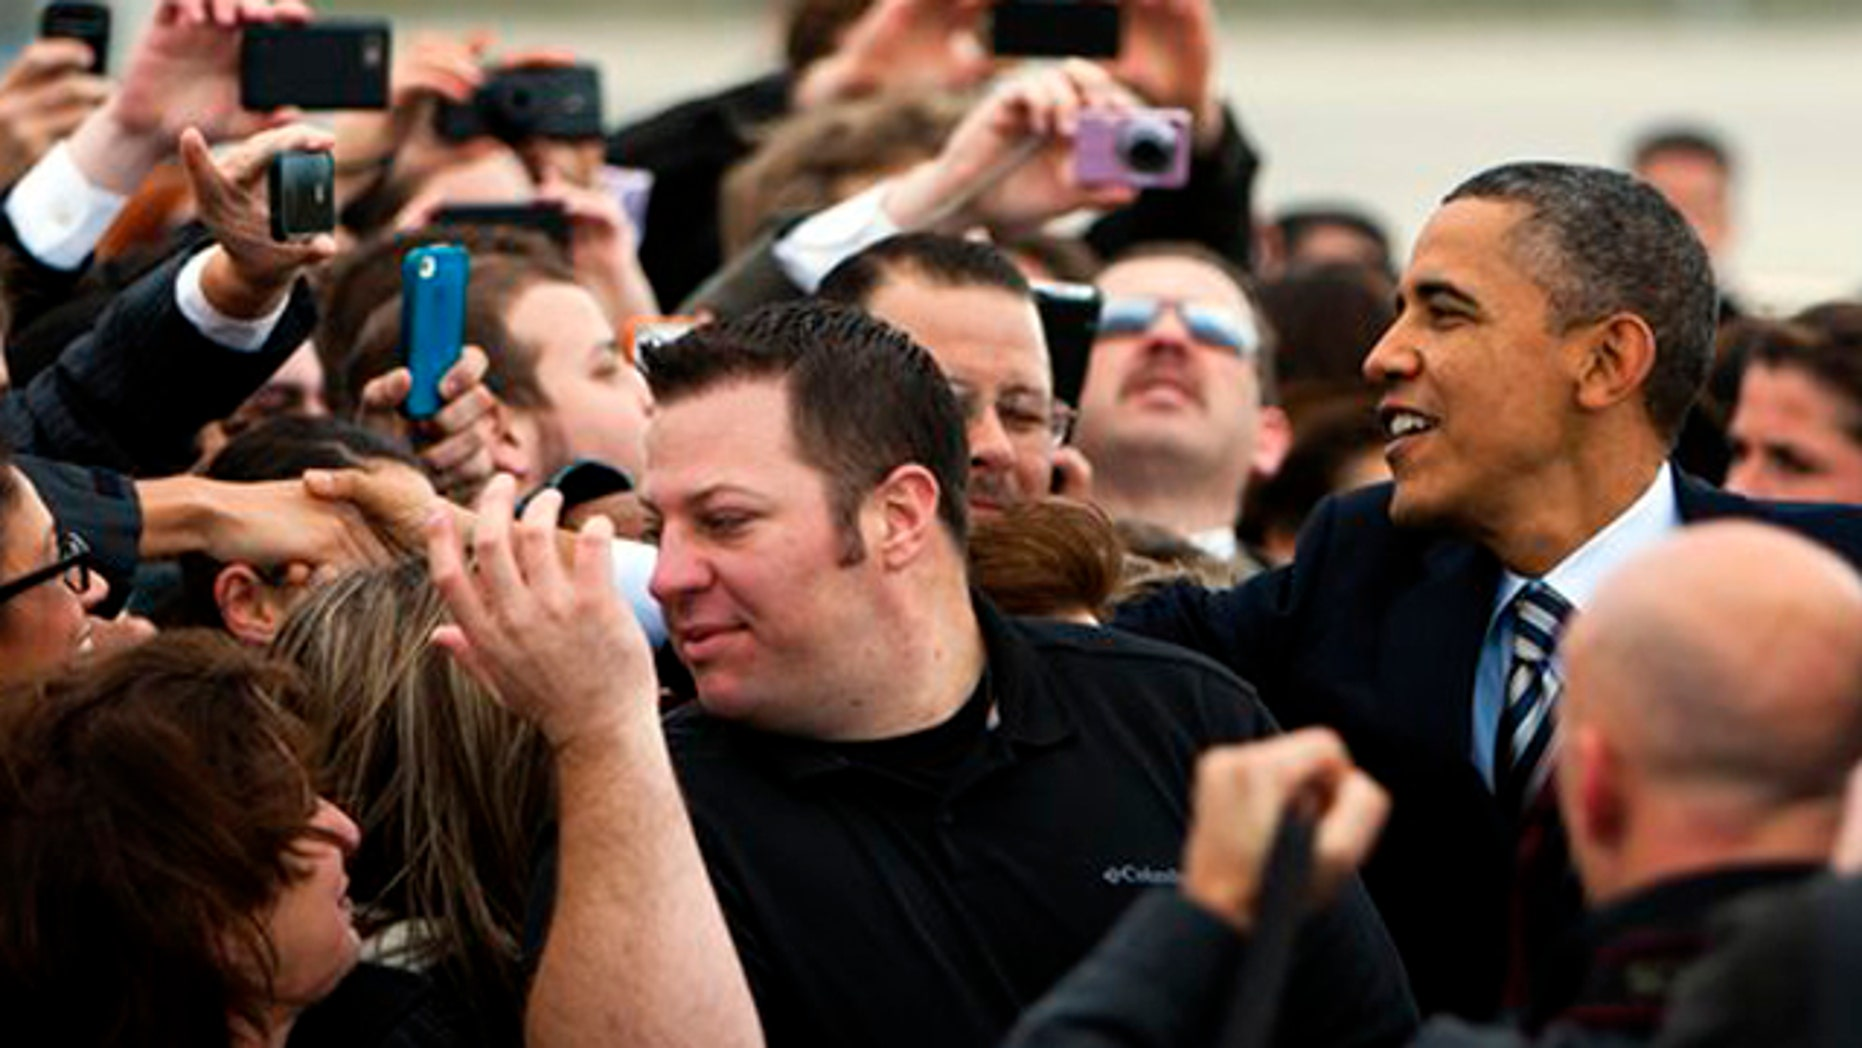 Feb. 15, 2012: President Barack Obama greets supporters as he arrives on Air Force One at Los Angeles International airport.